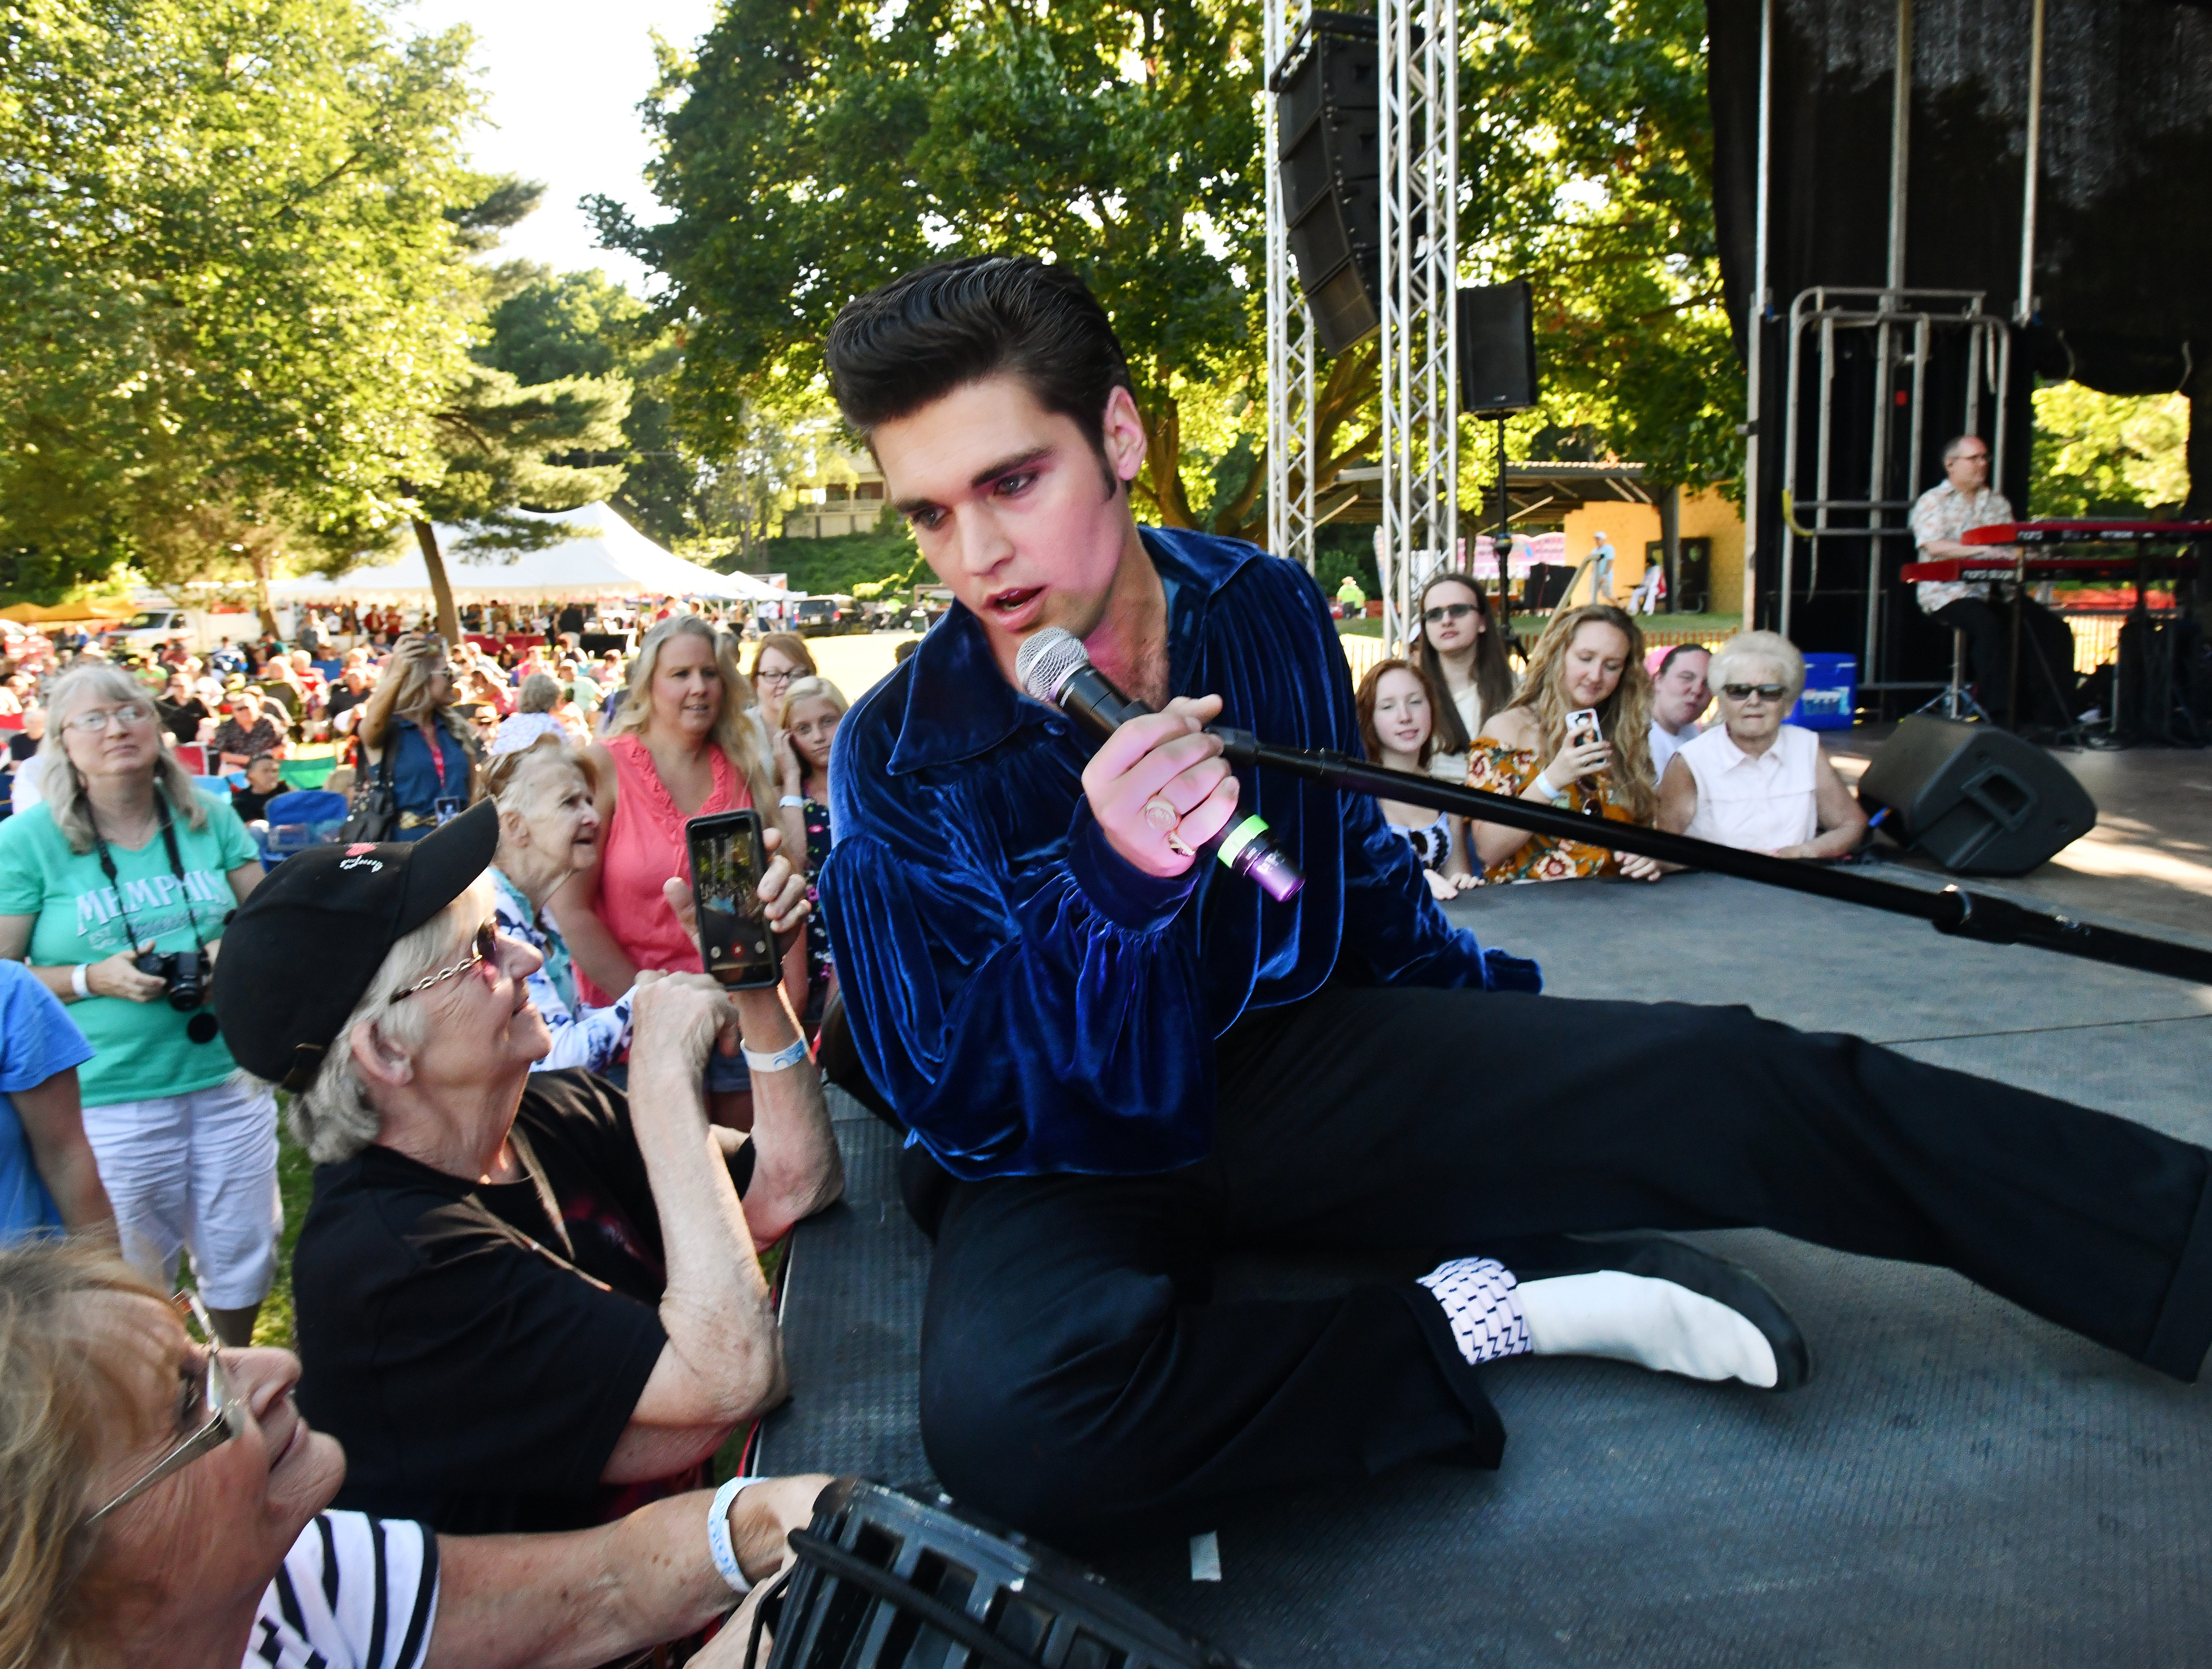 Elvis impersonator Jake Slater croons to the front row during his set at the Michigan Elvisfest at Depot Town in Ypsilanti on July 6, 2018.